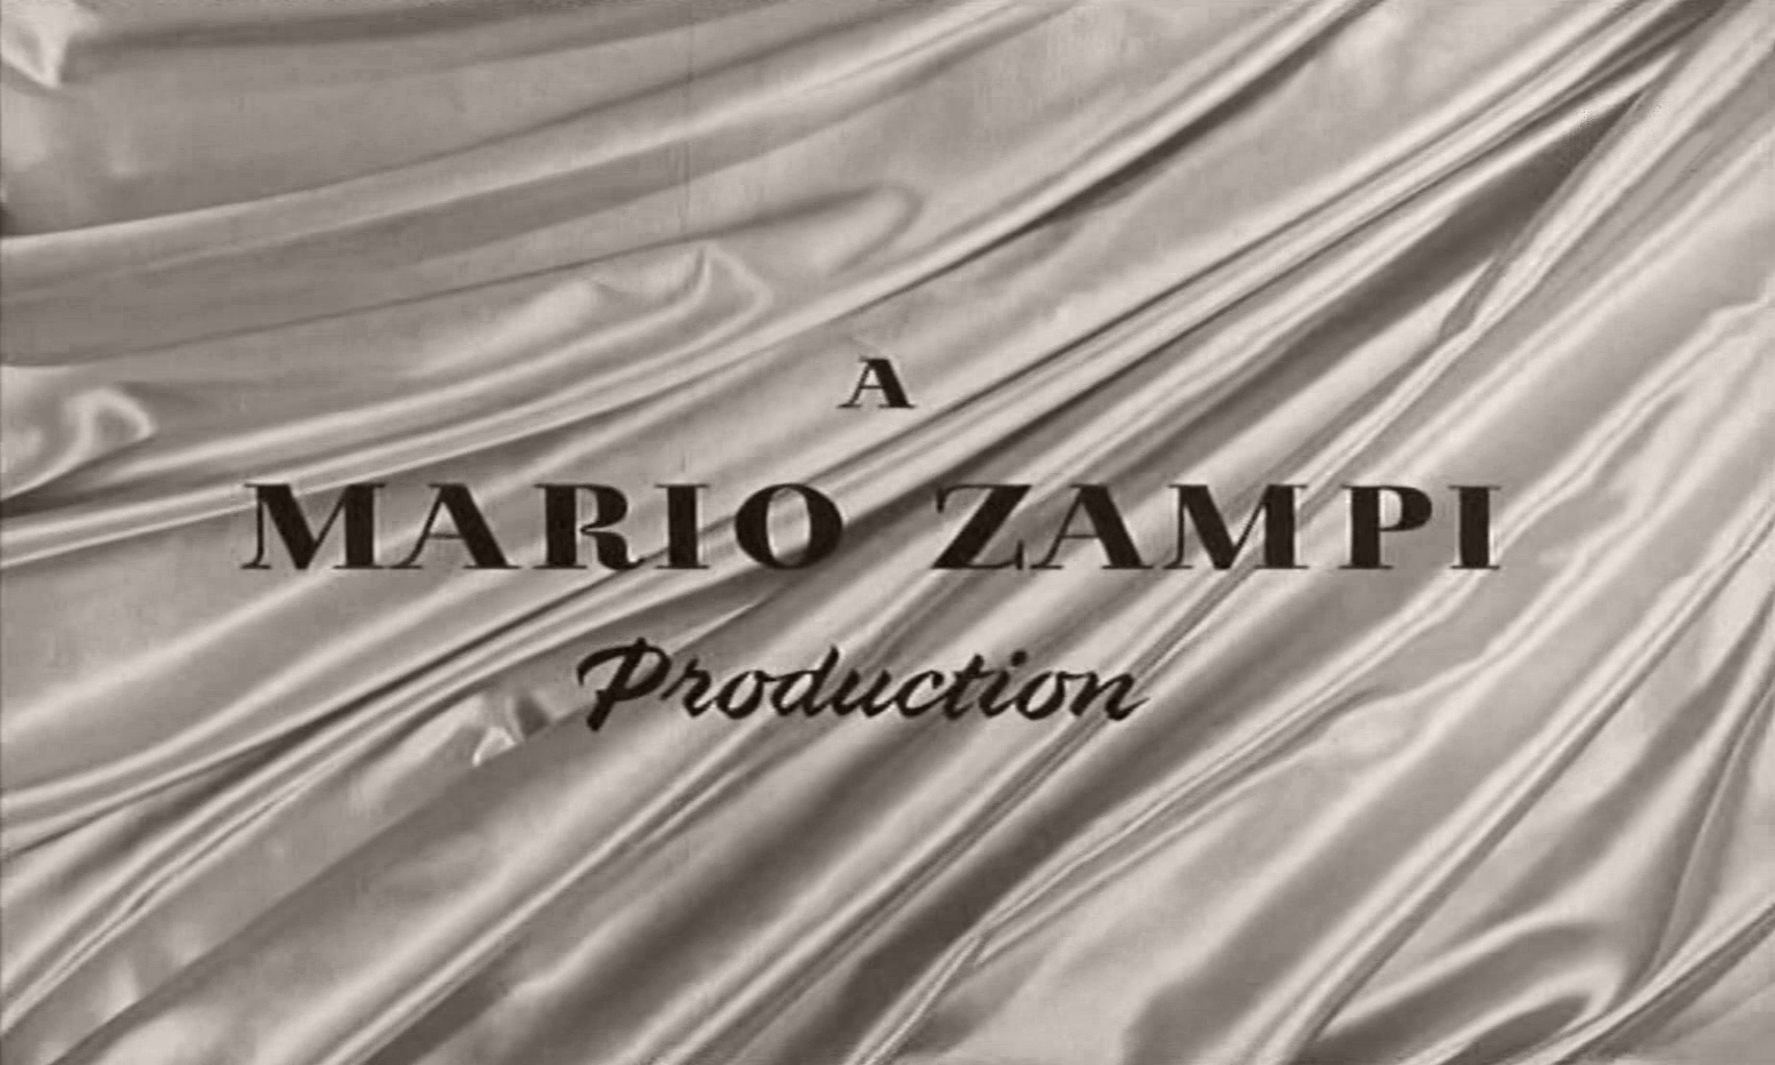 Main title from The Naked Truth (1957) (3).  A Mario Zampi production